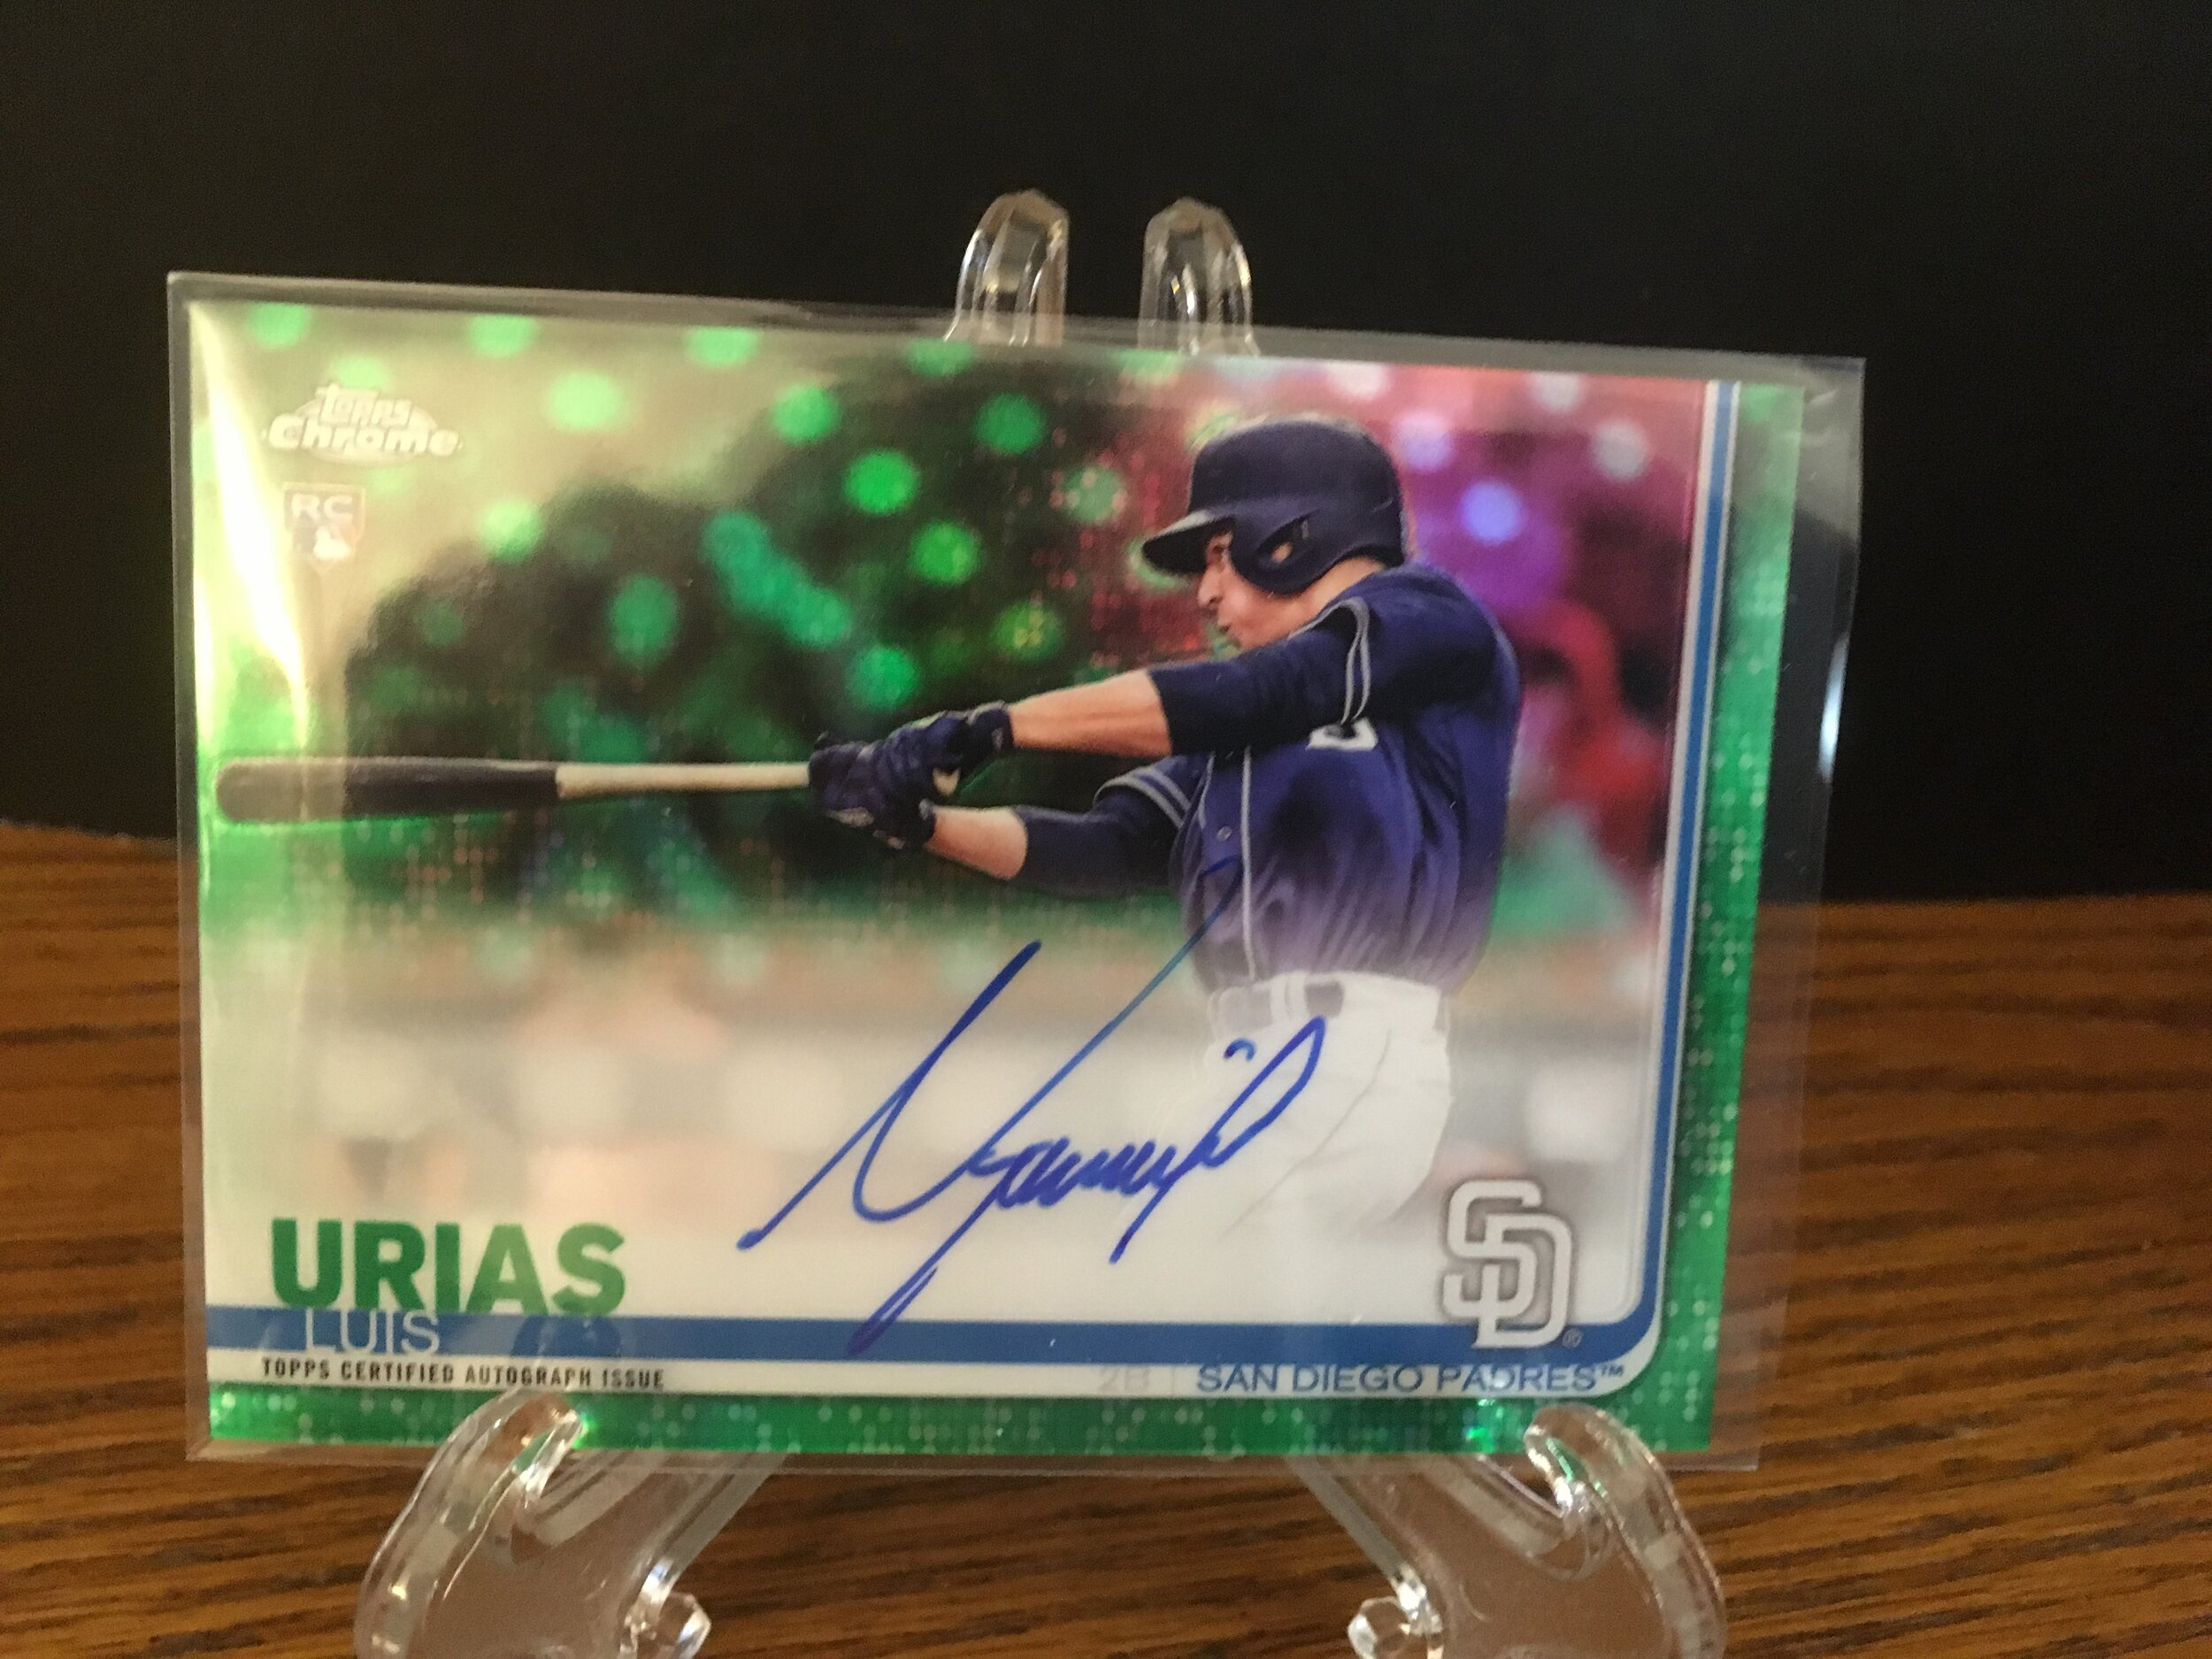 This Luis Urias auto was an awesome find!